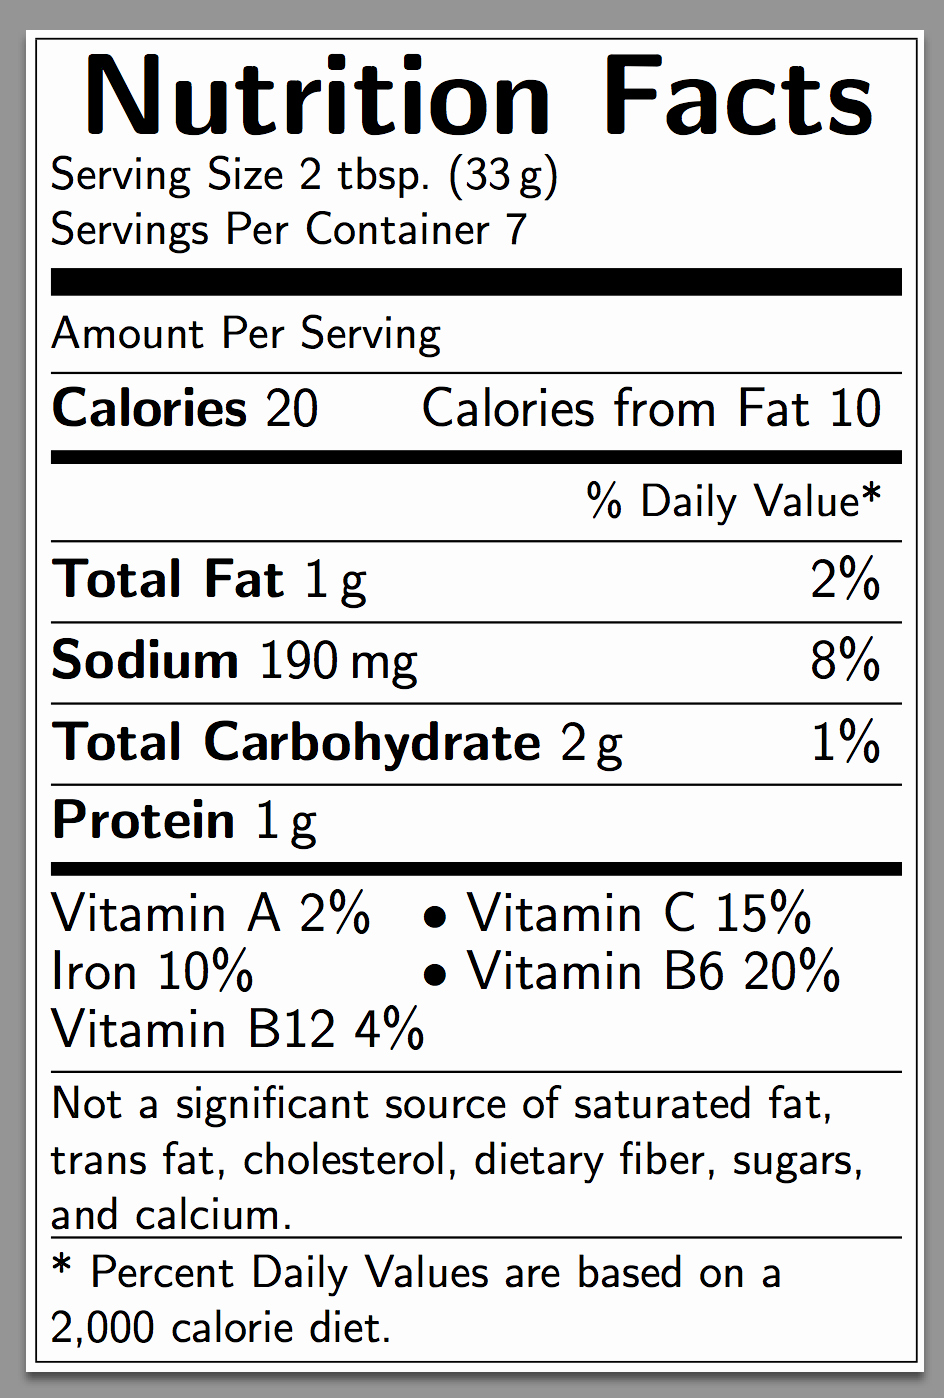 Nutrition Facts Label Template Best Of Diagrams How Can I Create A Nutrition Facts Label